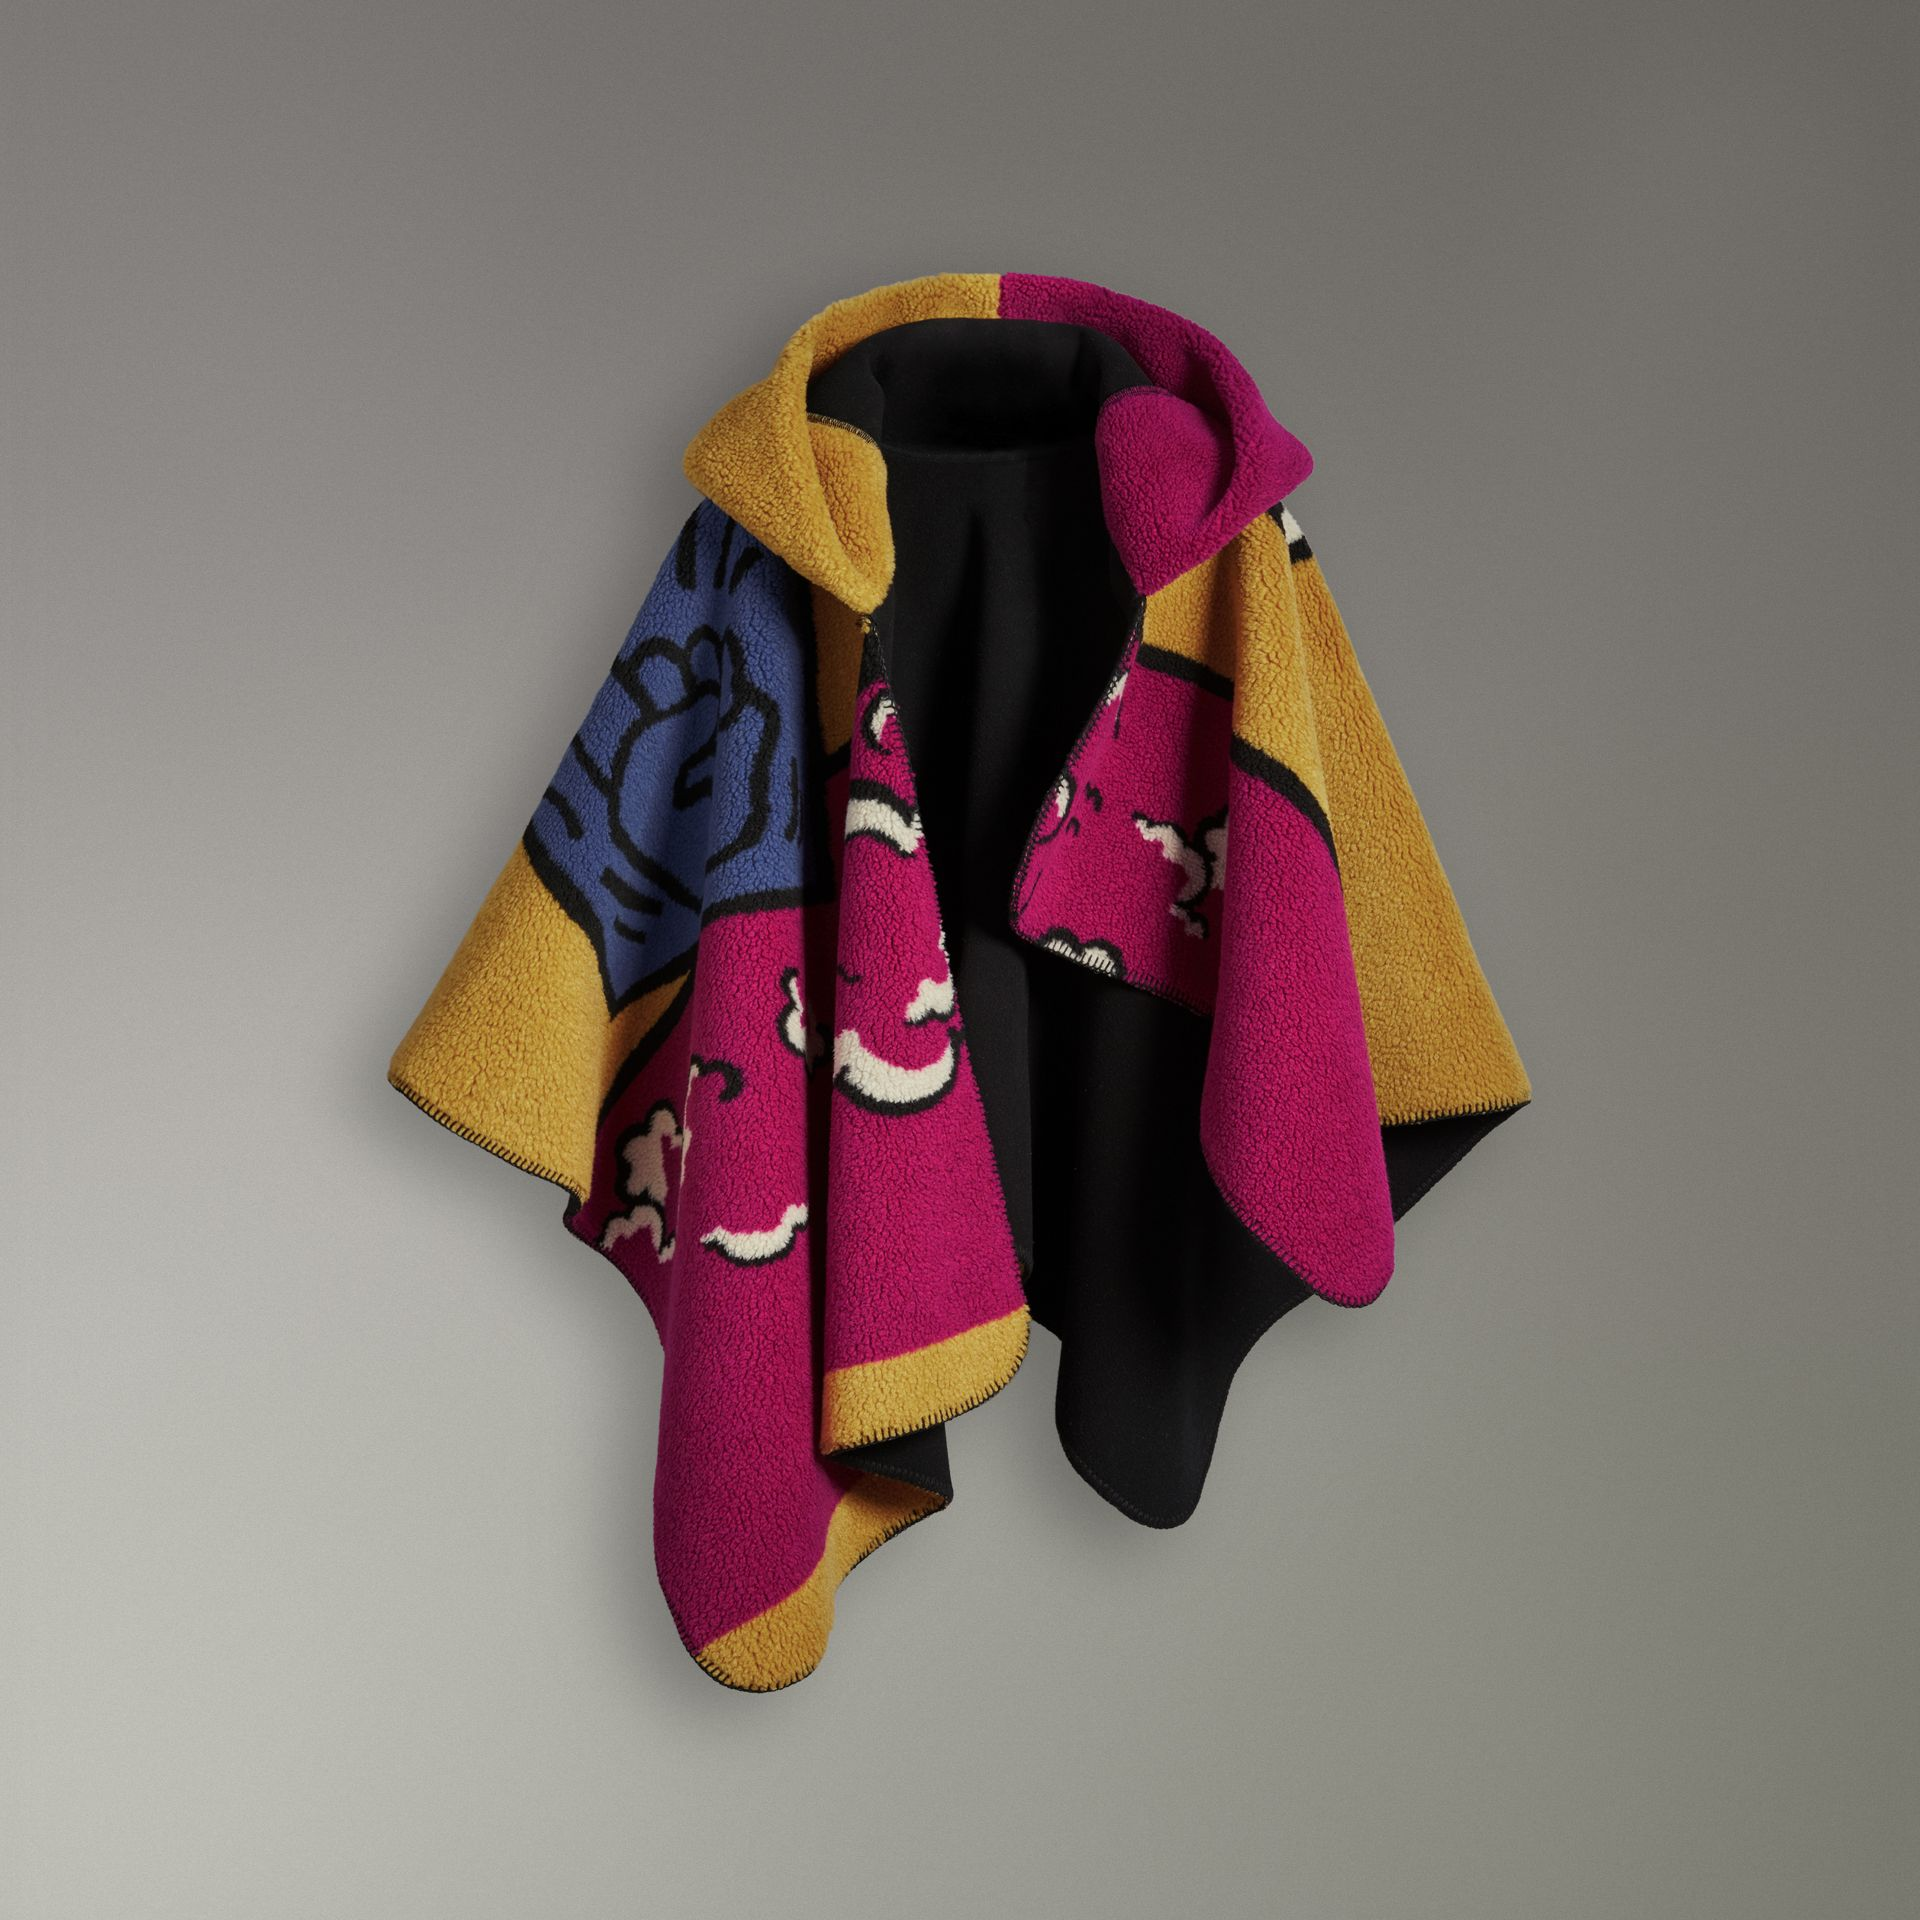 Poster Graphic Fleece Jacquard Hooded Poncho in Multicolour - Women | Burberry - gallery image 3